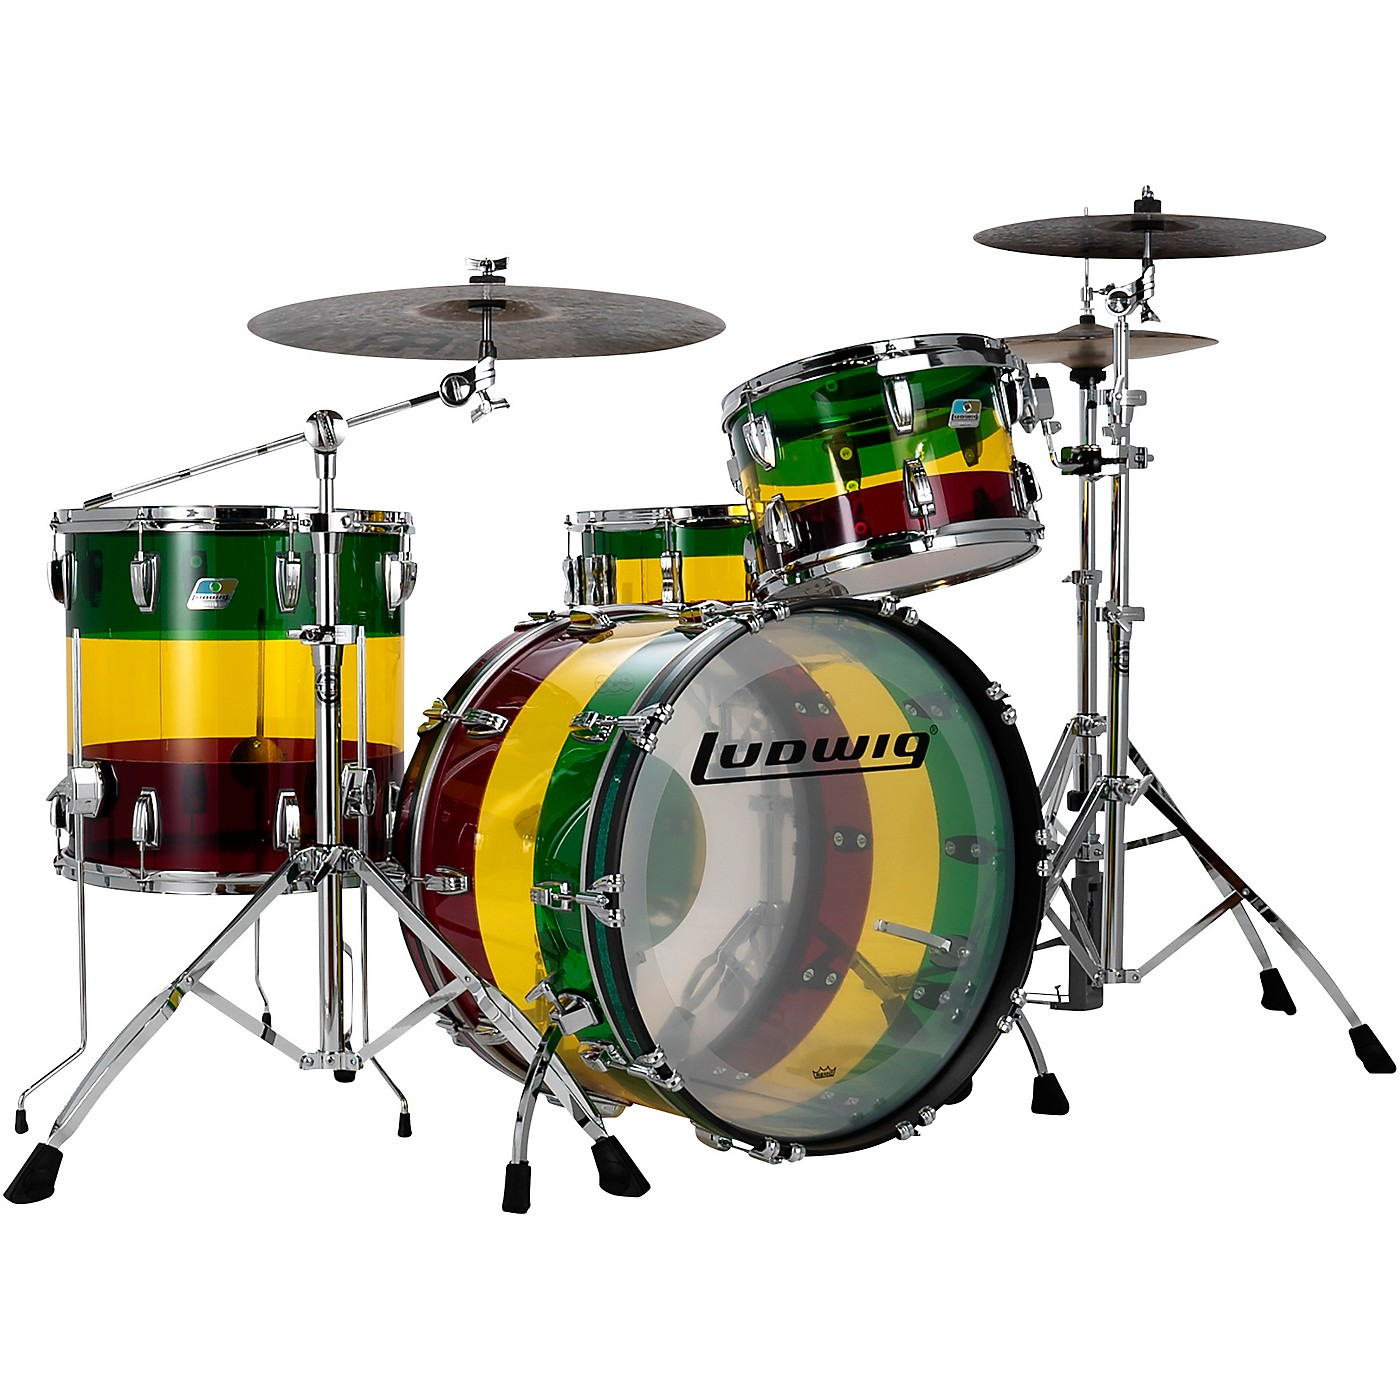 Ludwig Limited Edition Vistalite 3 piece FAB Shell Pack with 22 in Bass Drum- Island Sunset thumbnail